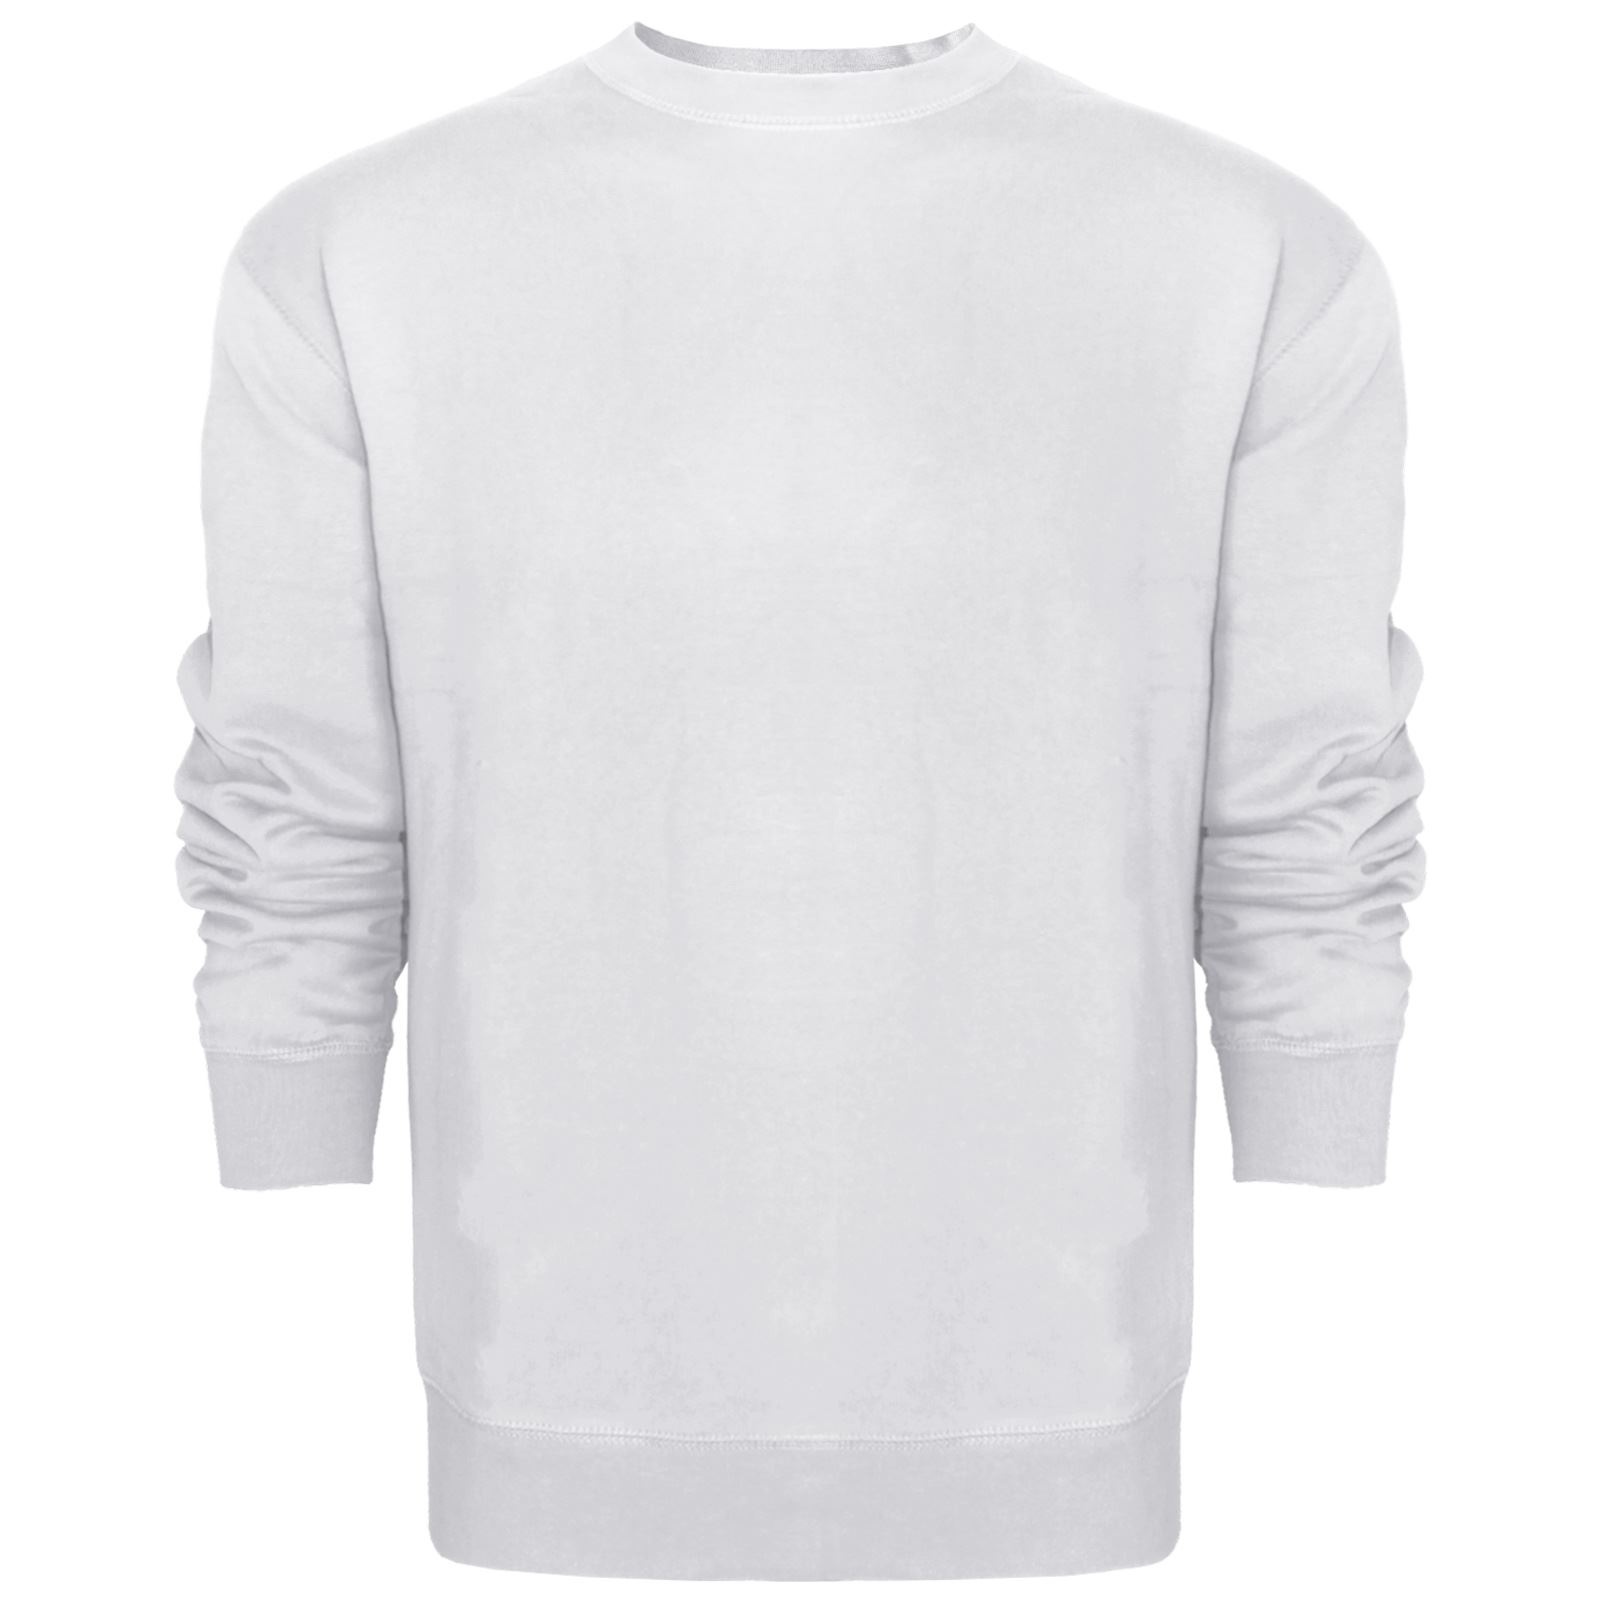 MENS SWEATSHIRT JUMPER CREW NECK SWEATER PLAIN CASUAL PULLOVER ...